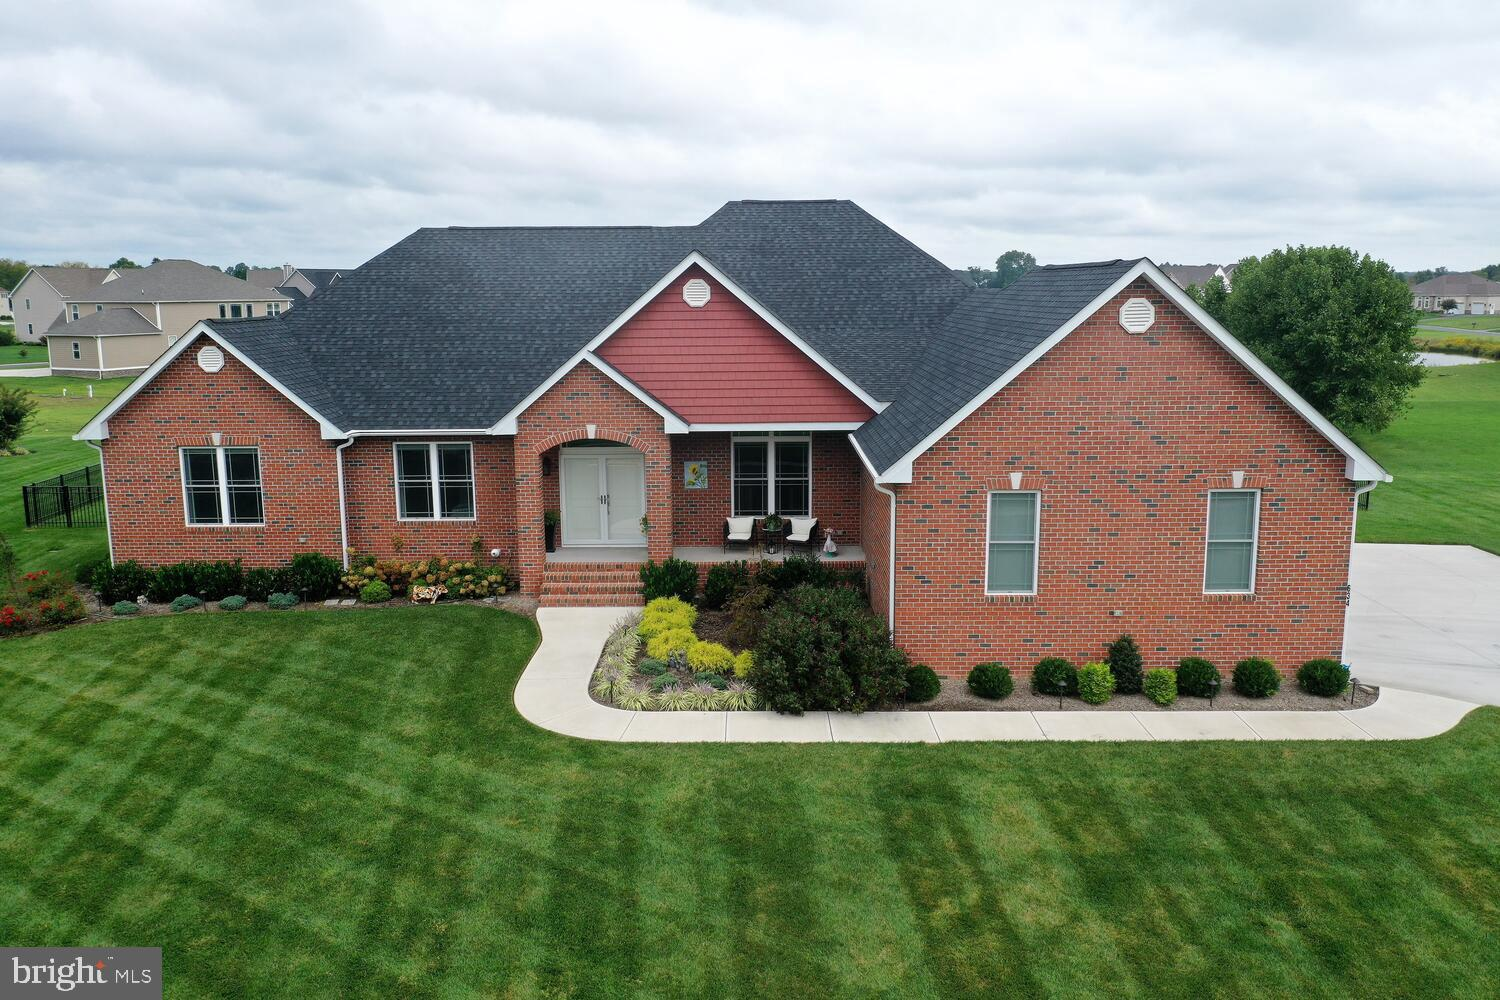 """Welcome home to 634 Estates Drive in the sought-after community of """"The Estates of Wild Quail"""".  This stunning custom all brick contemporary ranch home, built in 2019, sits on .55 acres backing to open/private space and is ready and waiting for its new owner!  As you enter through the double doors into the foyer you'll notice the unique light fixtures, which are found throughout the home.  To your left, the spacious dining room, perfect for all your holiday gatherings and get togethers.  Make your way to the bright and sunny generously sized kitchen area.  Enjoy your morning coffee in one of the two sunrooms the home has to offer.  Other kitchen amenities include, granite counter tops, 42"""" soft close cabinetry, large island with seating for four, built in office nook and convenient laundry/mud room w/ utility sink.  Just off the kitchen you'll find the family room w/ gas fireplace and living room.  Both rooms offer trey ceilings w/ an abundant amount of recessed gallery lighting and ceiling fans.  Step through the sliders into the inviting, second sunroom overlooking the well-manicured fenced backyard.  Spend your evenings relaxing on the concrete paver patio enjoying the warmth of a cozy fire. Located on the opposite side of the home, the sizeable master bedroom offering a sitting area, walk in closet, trey ceiling w/ recessed lighting, large private bath with 6' whirlpool jetted soaker tub, tile and grout shower, double bowl vanity and separate water closet with added single bowl vanity. Two additional bedrooms and full hall bath w/ cast iron tub, glass shower doors w/ tile and grout shower walls and flooring plus another half bath complete the main floor of the home.  If you find you're in need of even more room, make your way to the enormous, finished basement, which offers another approximate 3600 square feet of livable space. The massive 30x19 bedroom w/ double closets and egress window offers comfort and privacy for your guests with access to an additional fu"""